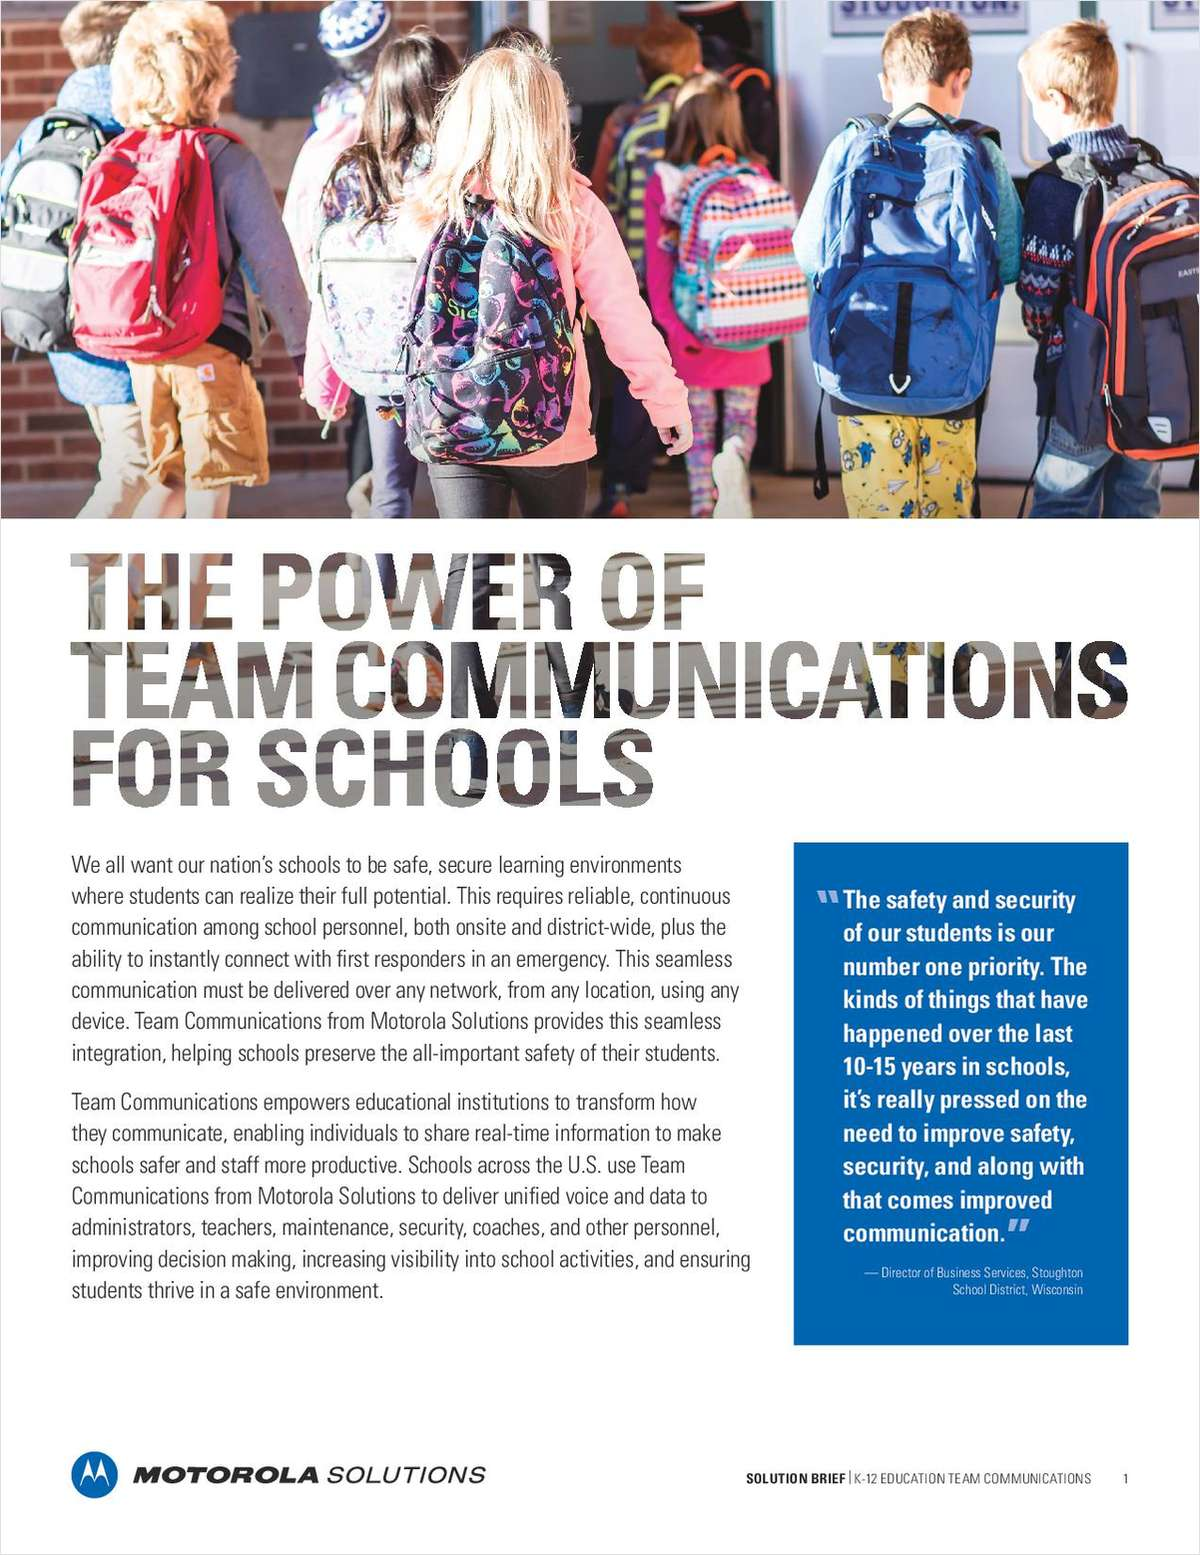 The Power of Team Communications for Schools